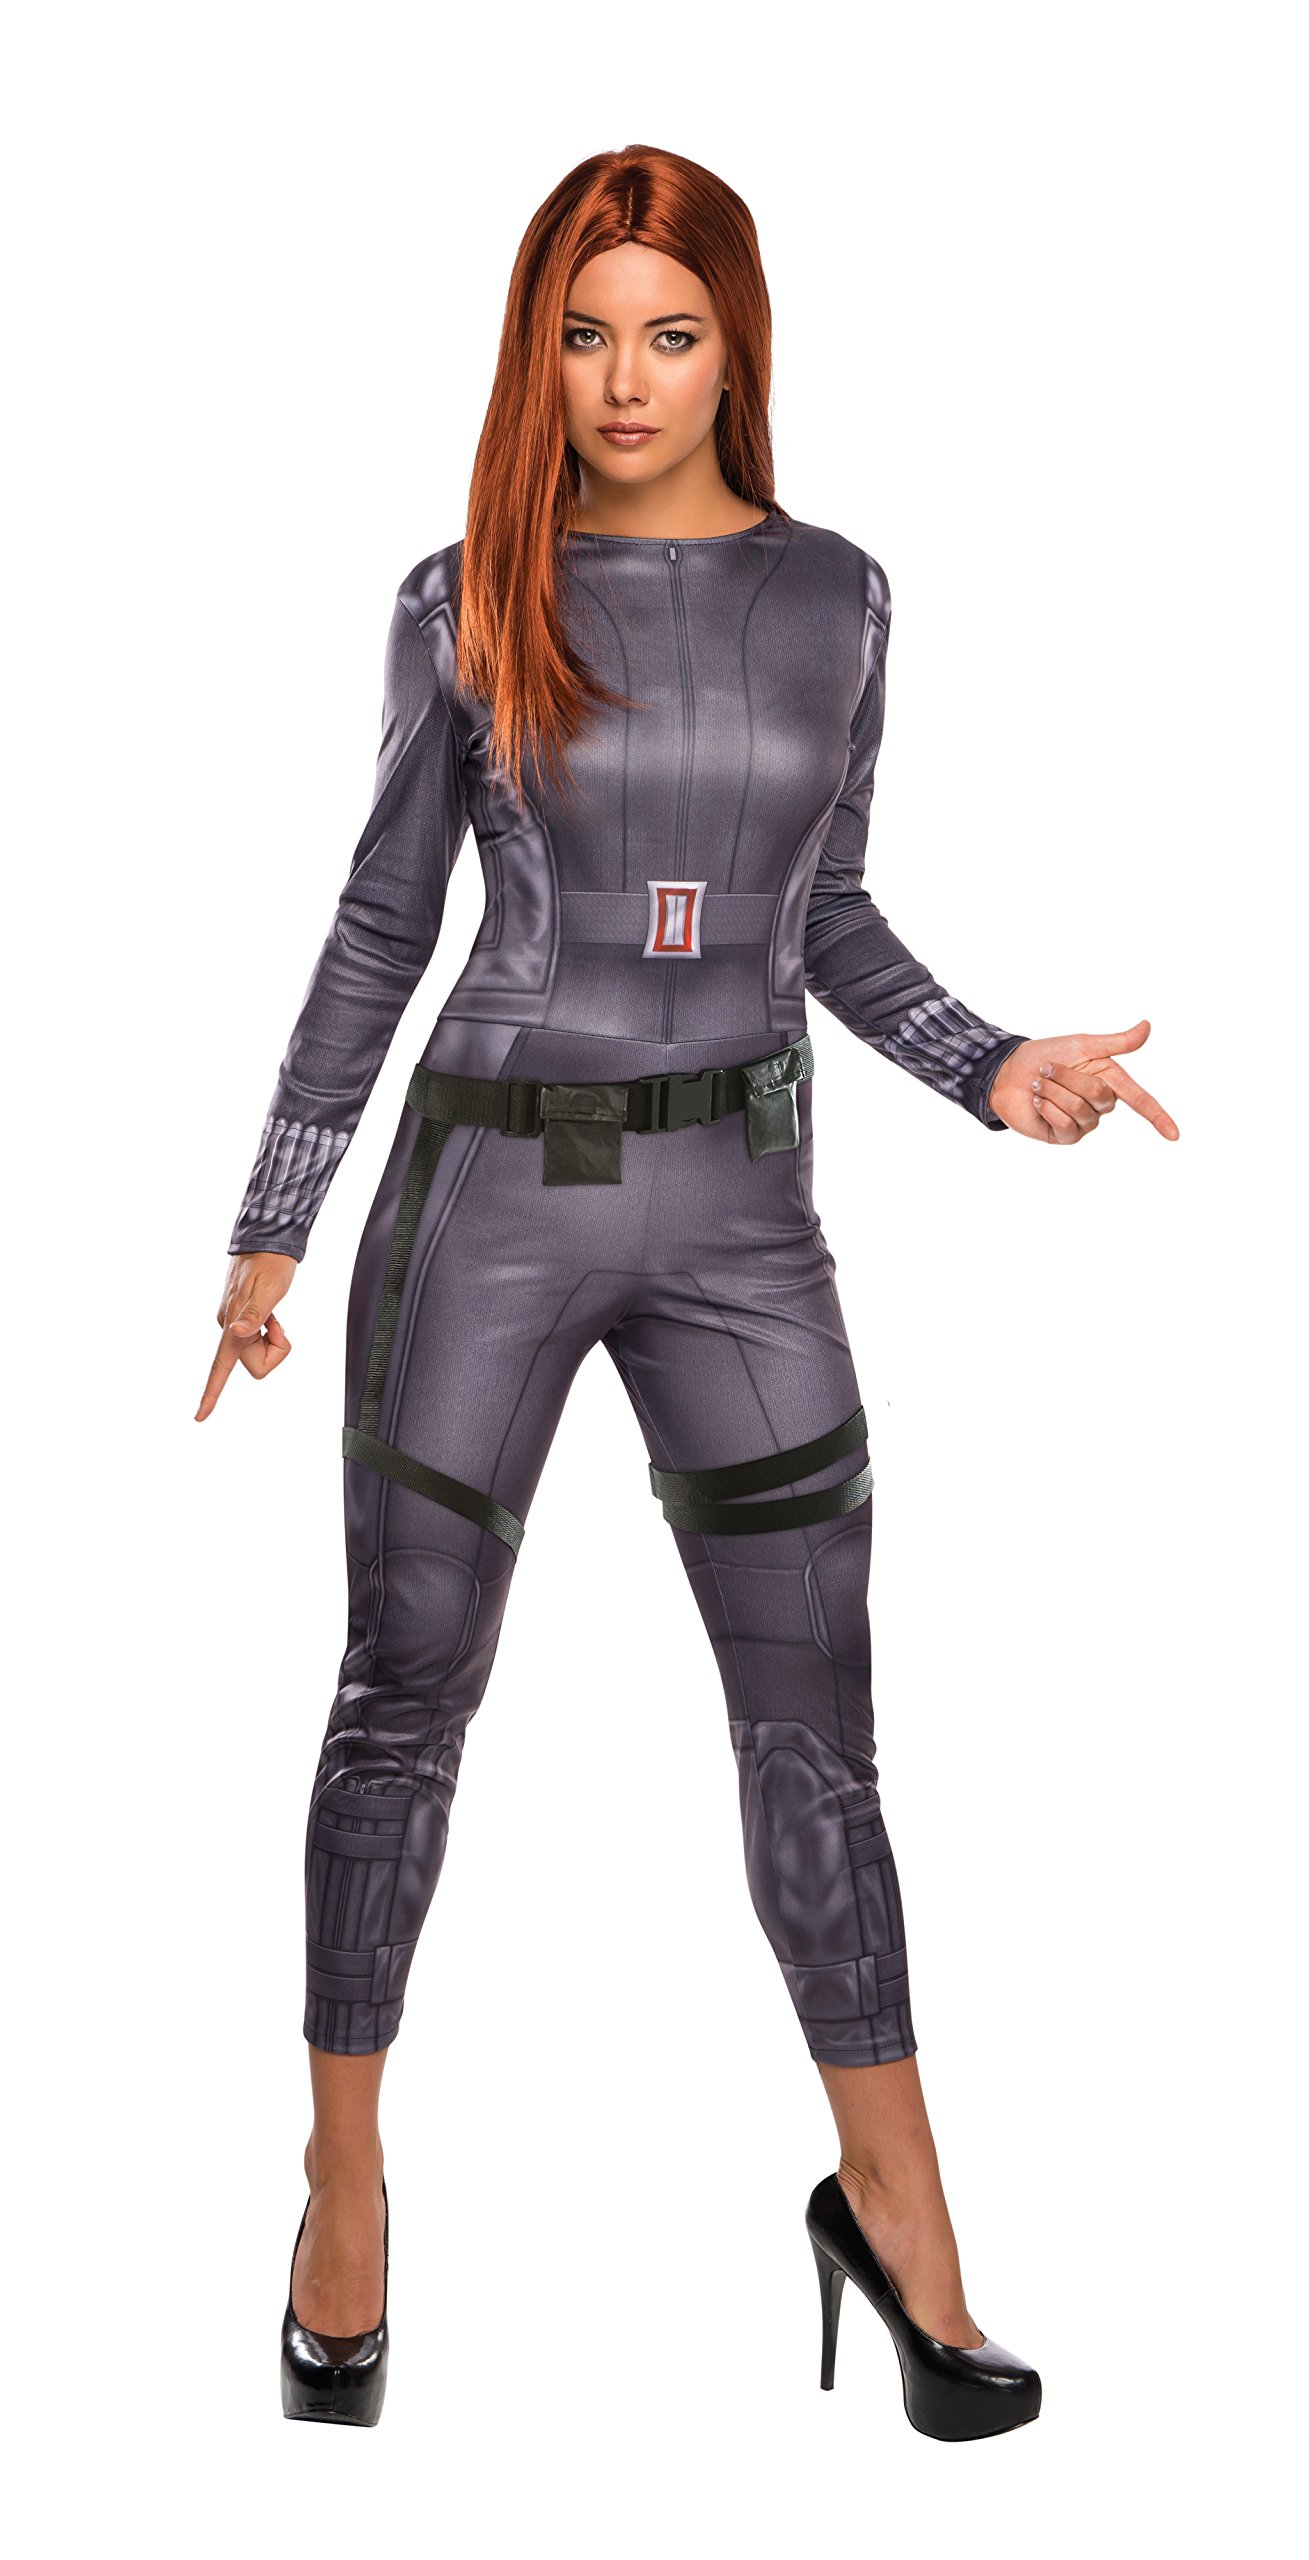 - 71eLH3o9GVL - Marvel Women's Universe Captain America Winter Soldier Black Widow